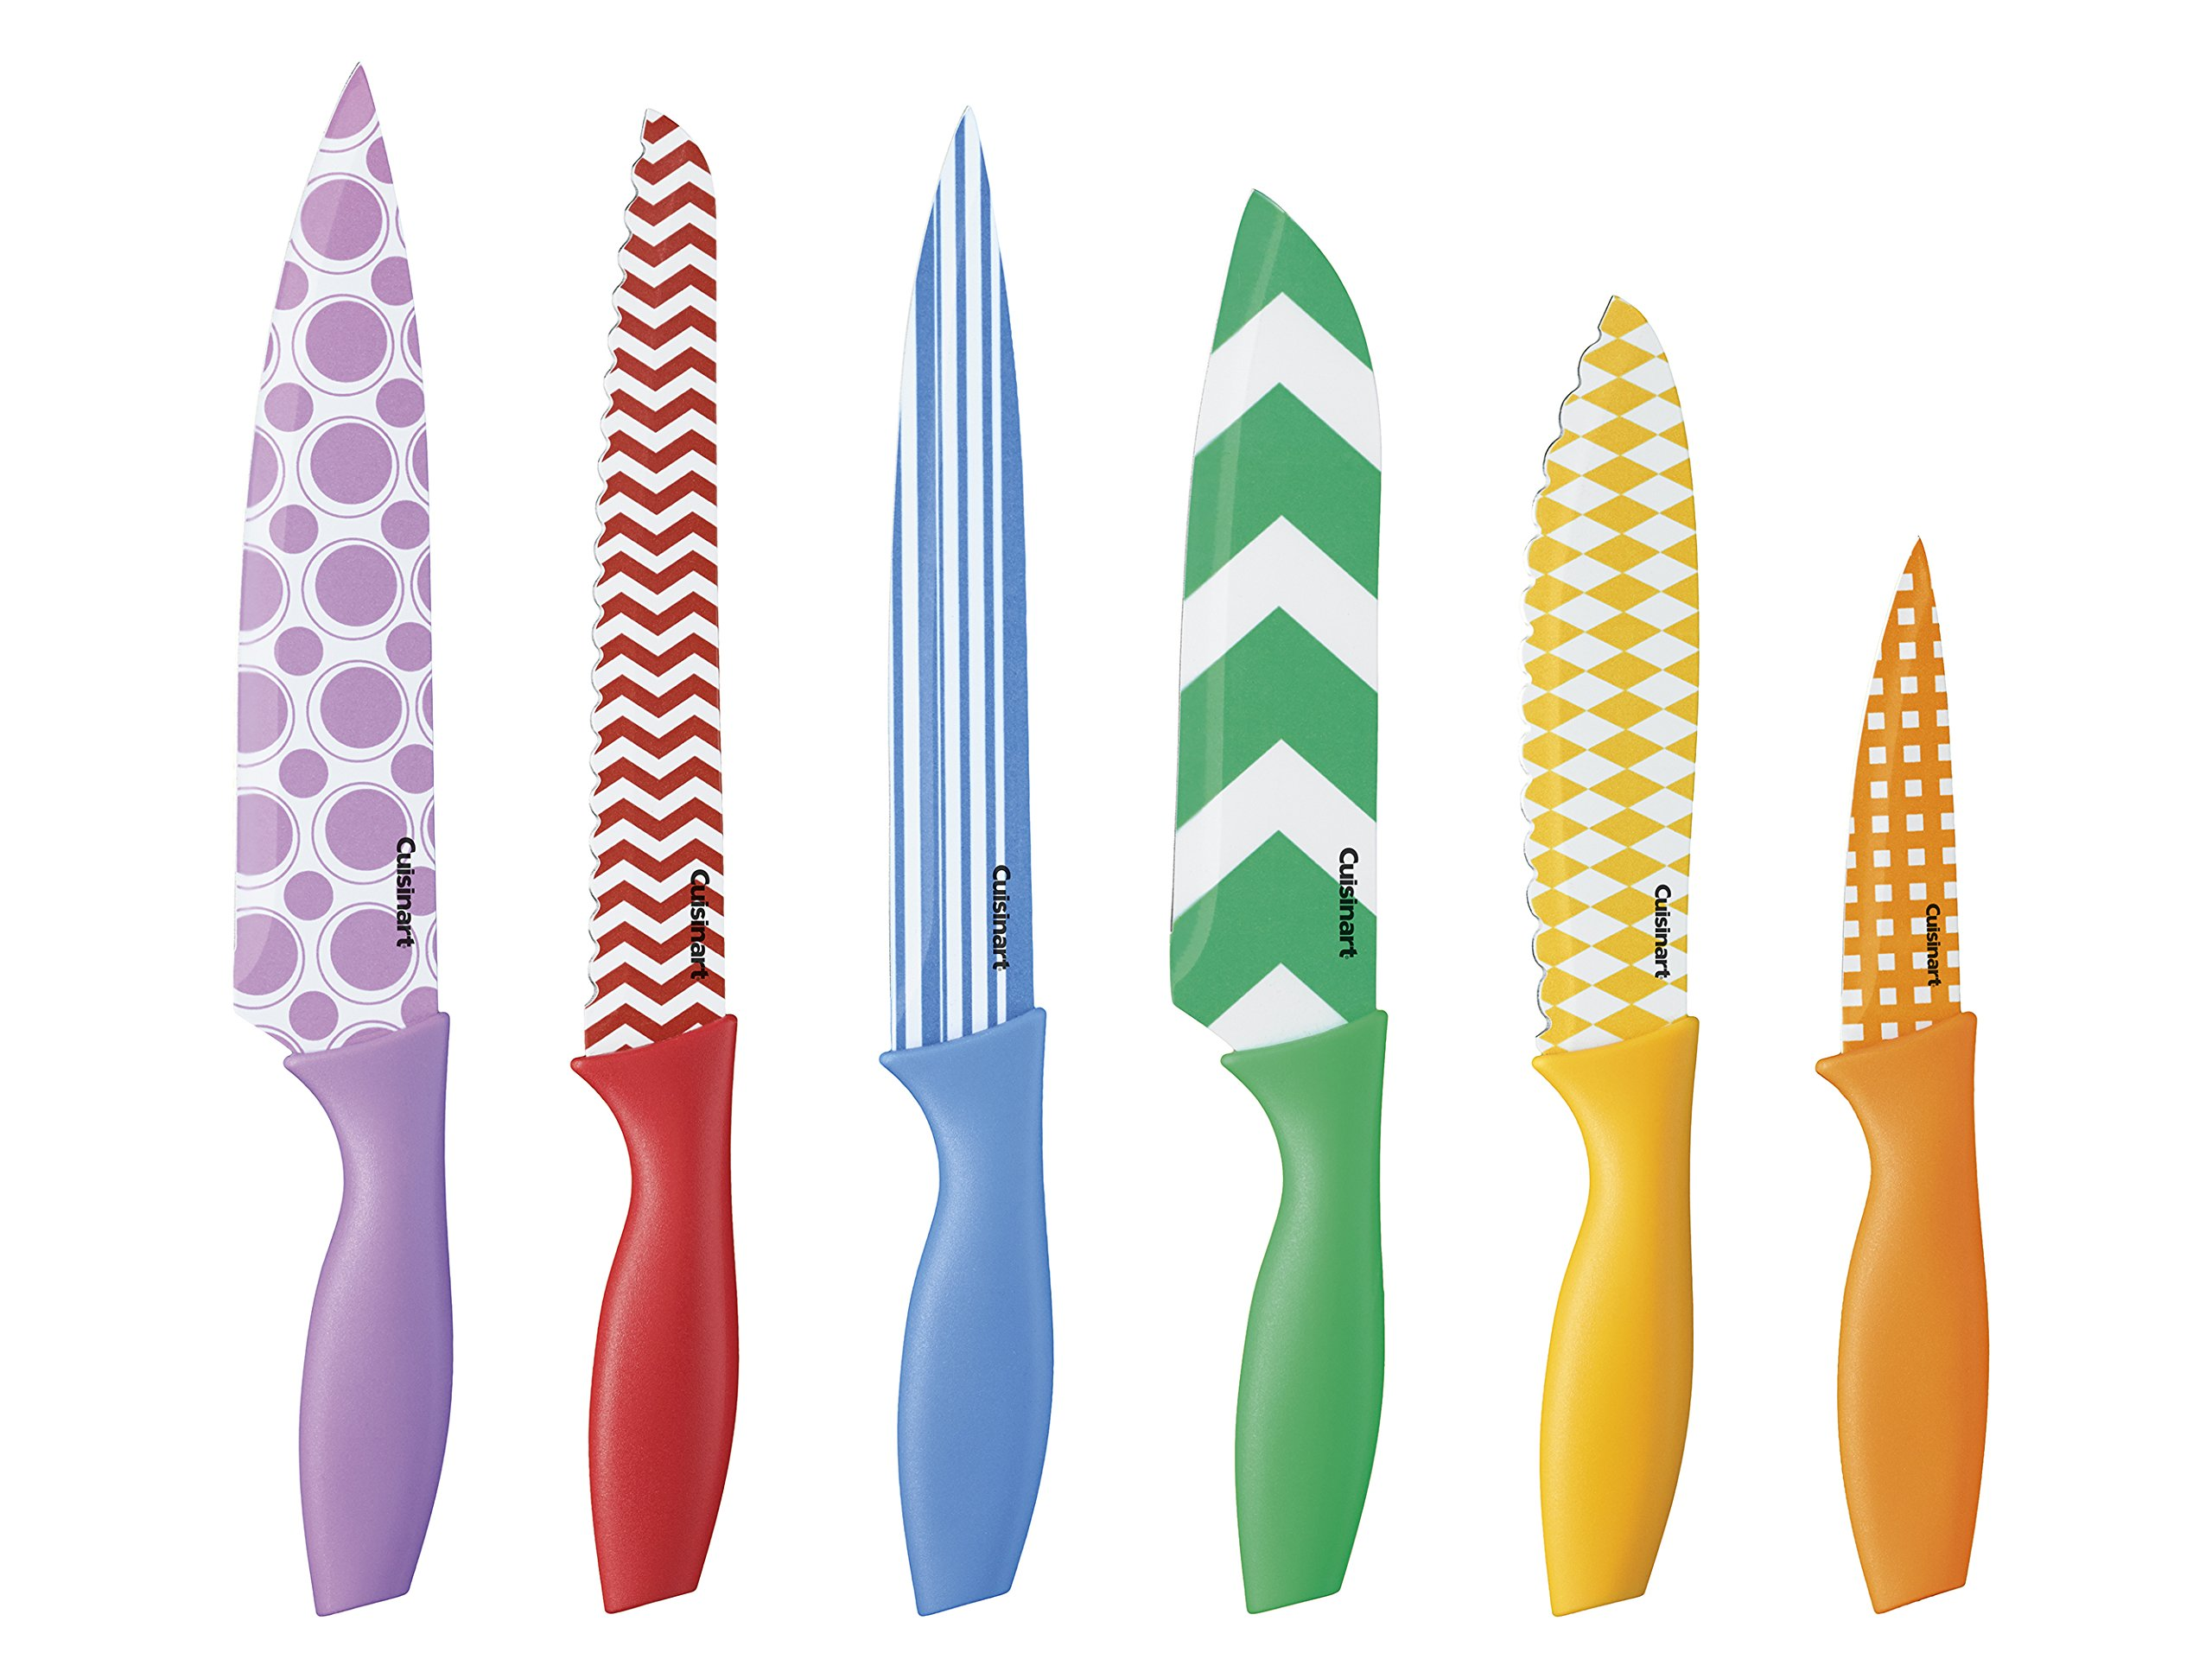 Cuisinart C55-12PR1 12-Piece Printed Color Knife Set with Blade Guards, Multicolored